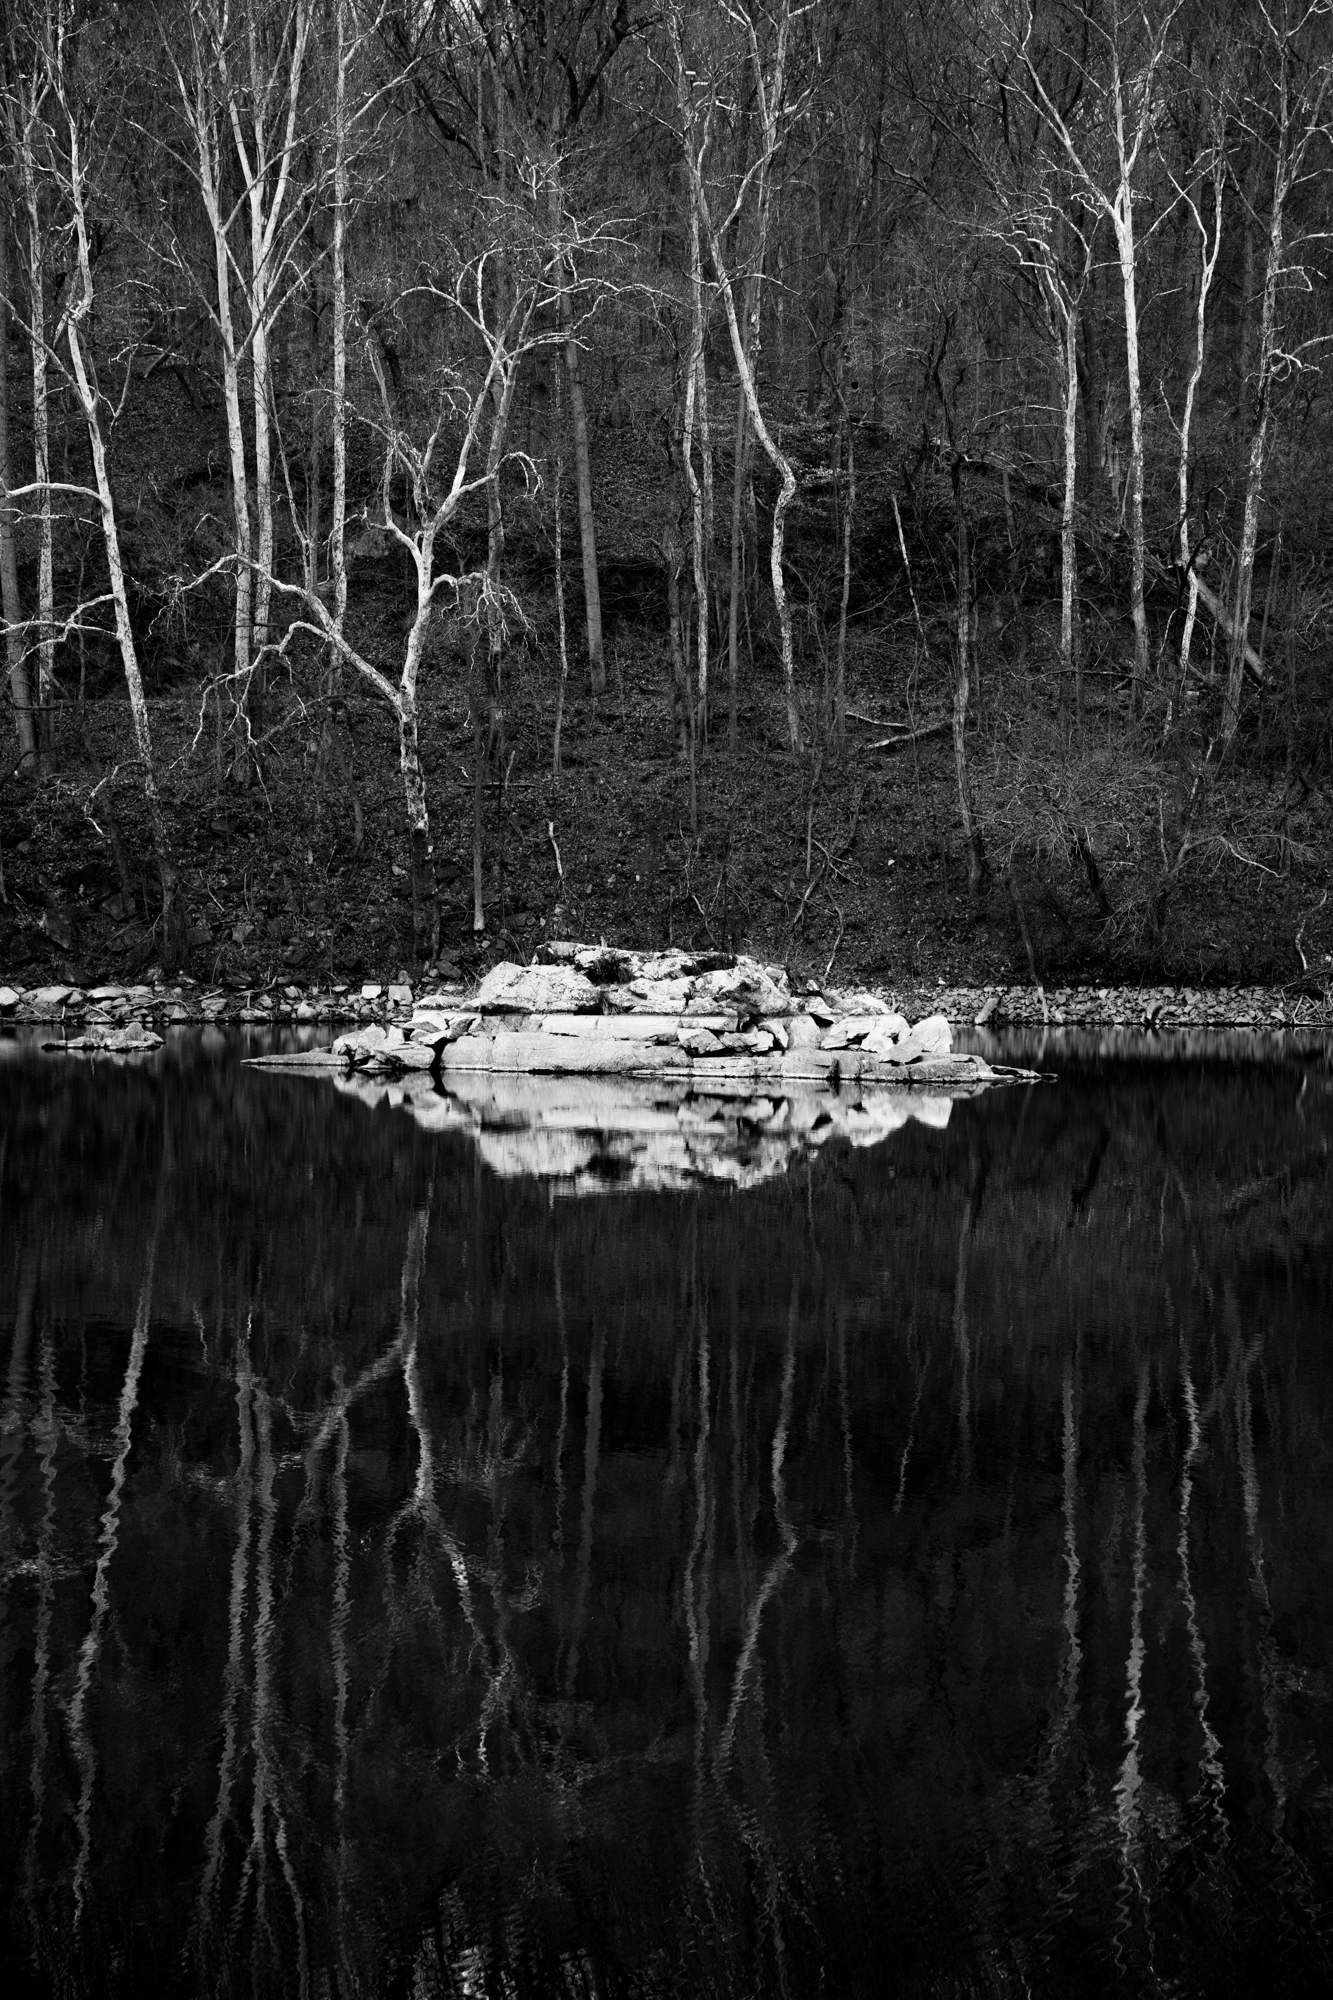 Water in the C&O Canal was very still, giving perfect reflections of the bright yet bare tree trunks across the canal.